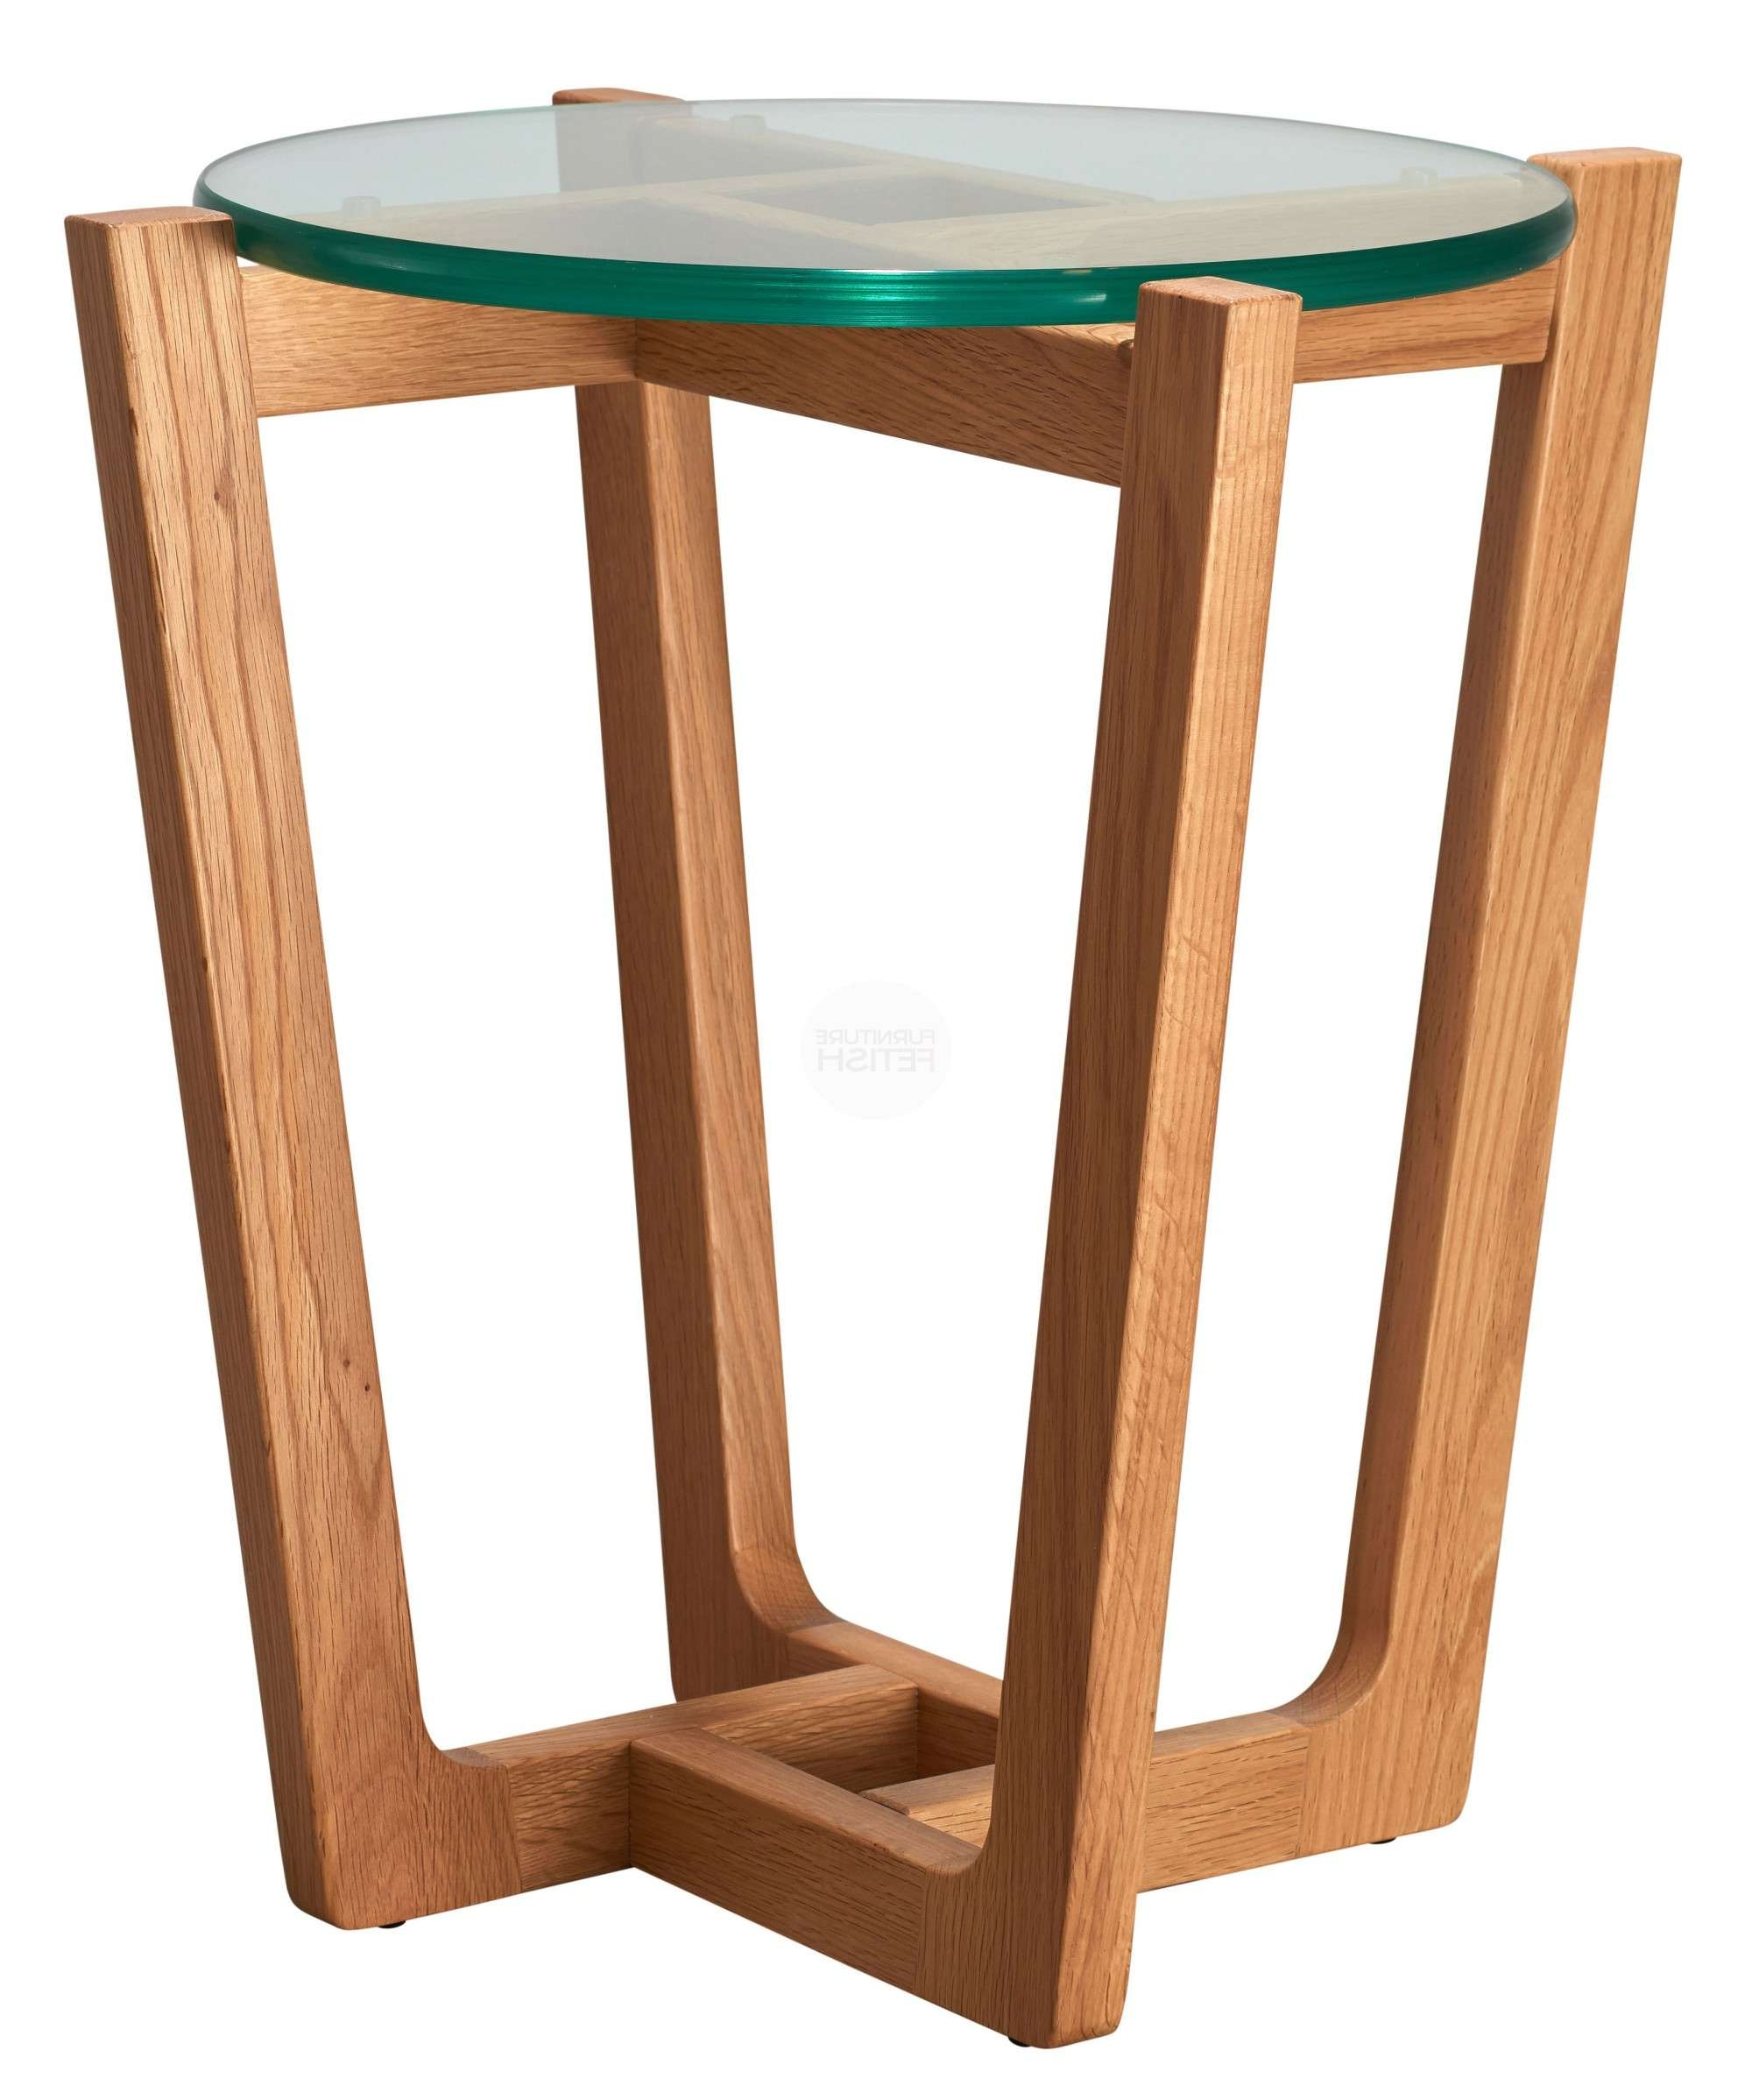 Well Known Monterey Coffee Tables Inside Scandinavian Glass Coffee Table & Side Table Package – Furniture (View 12 of 20)